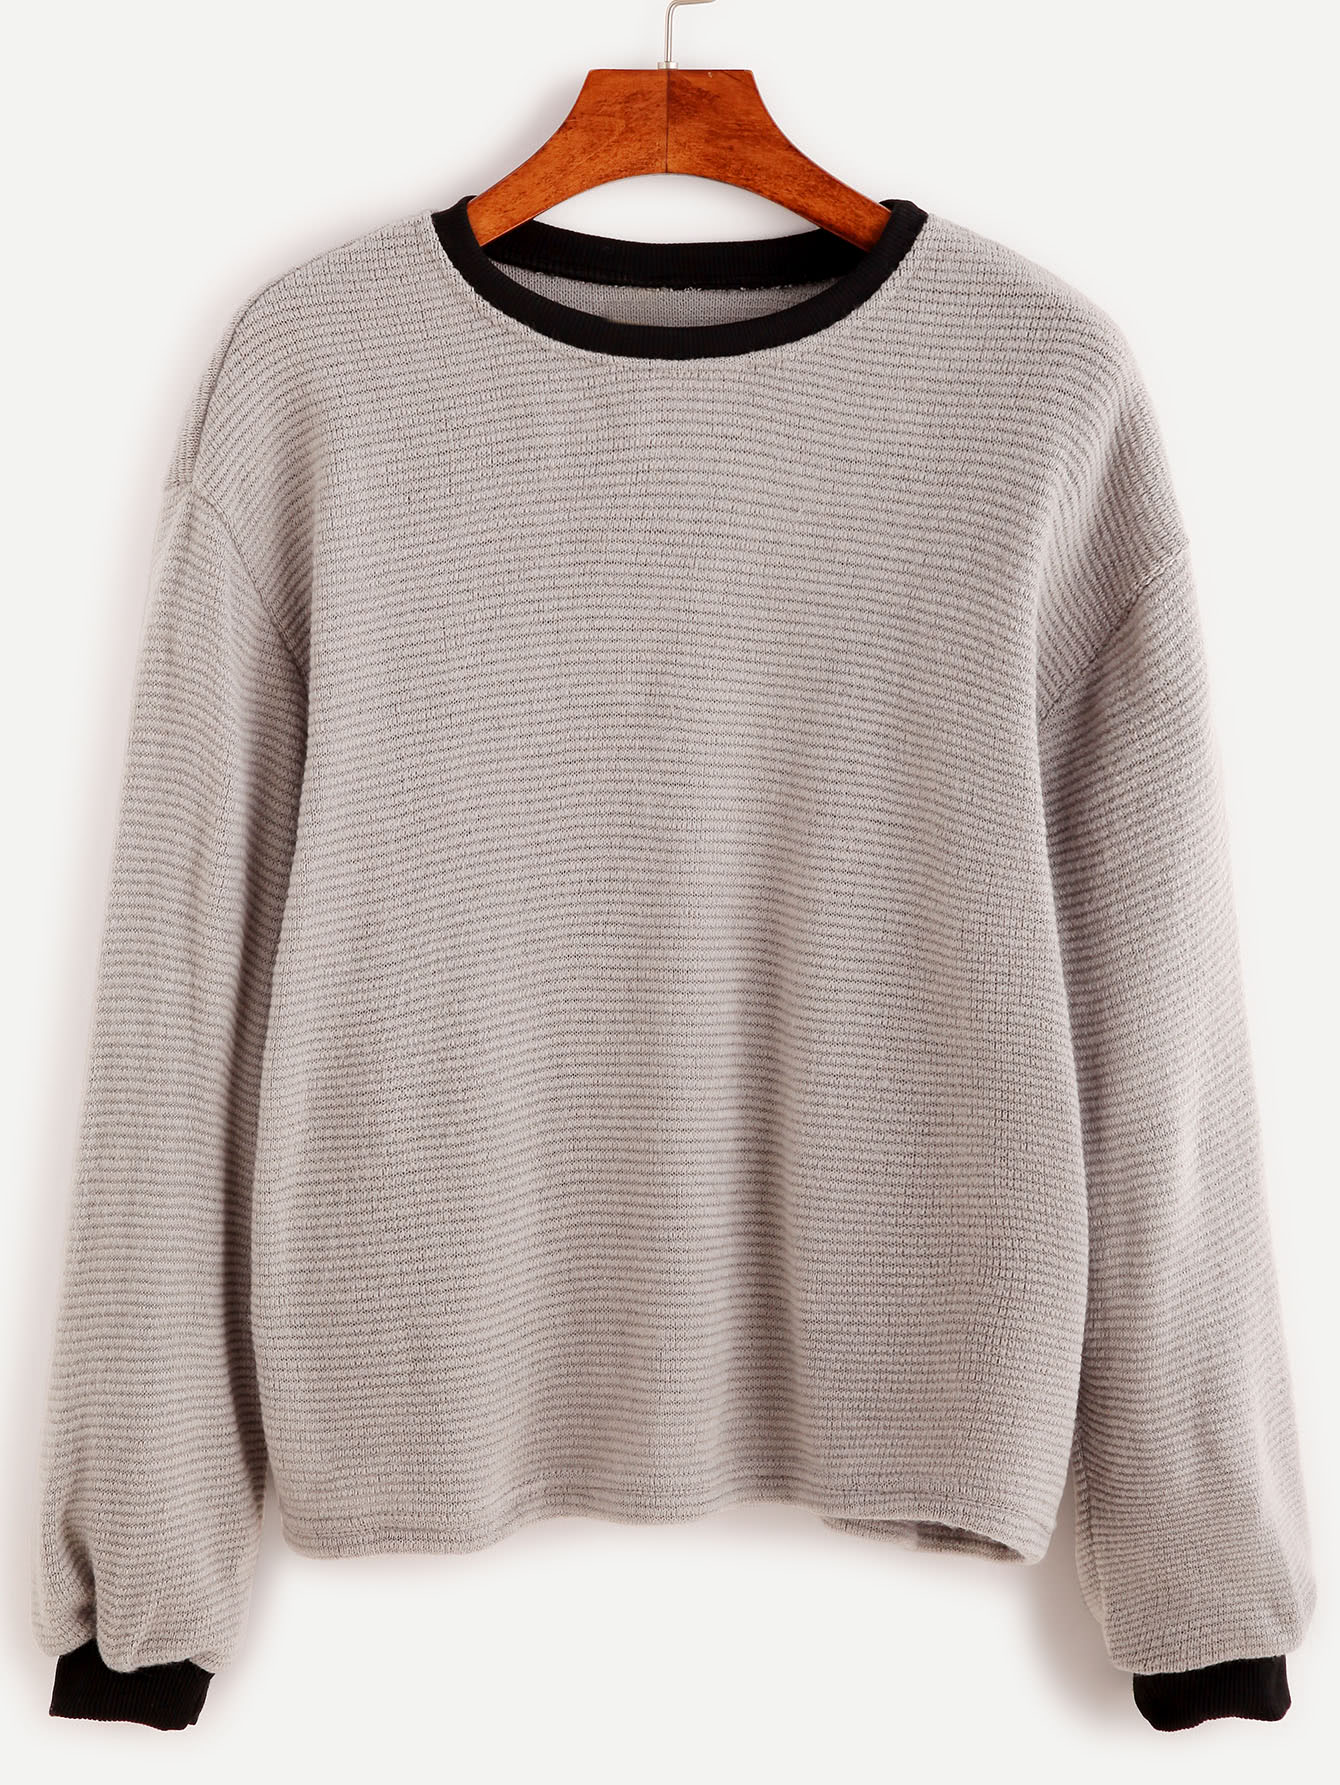 Contrast Trim Drop Shoulder Ribbed Sweater sweater161006102